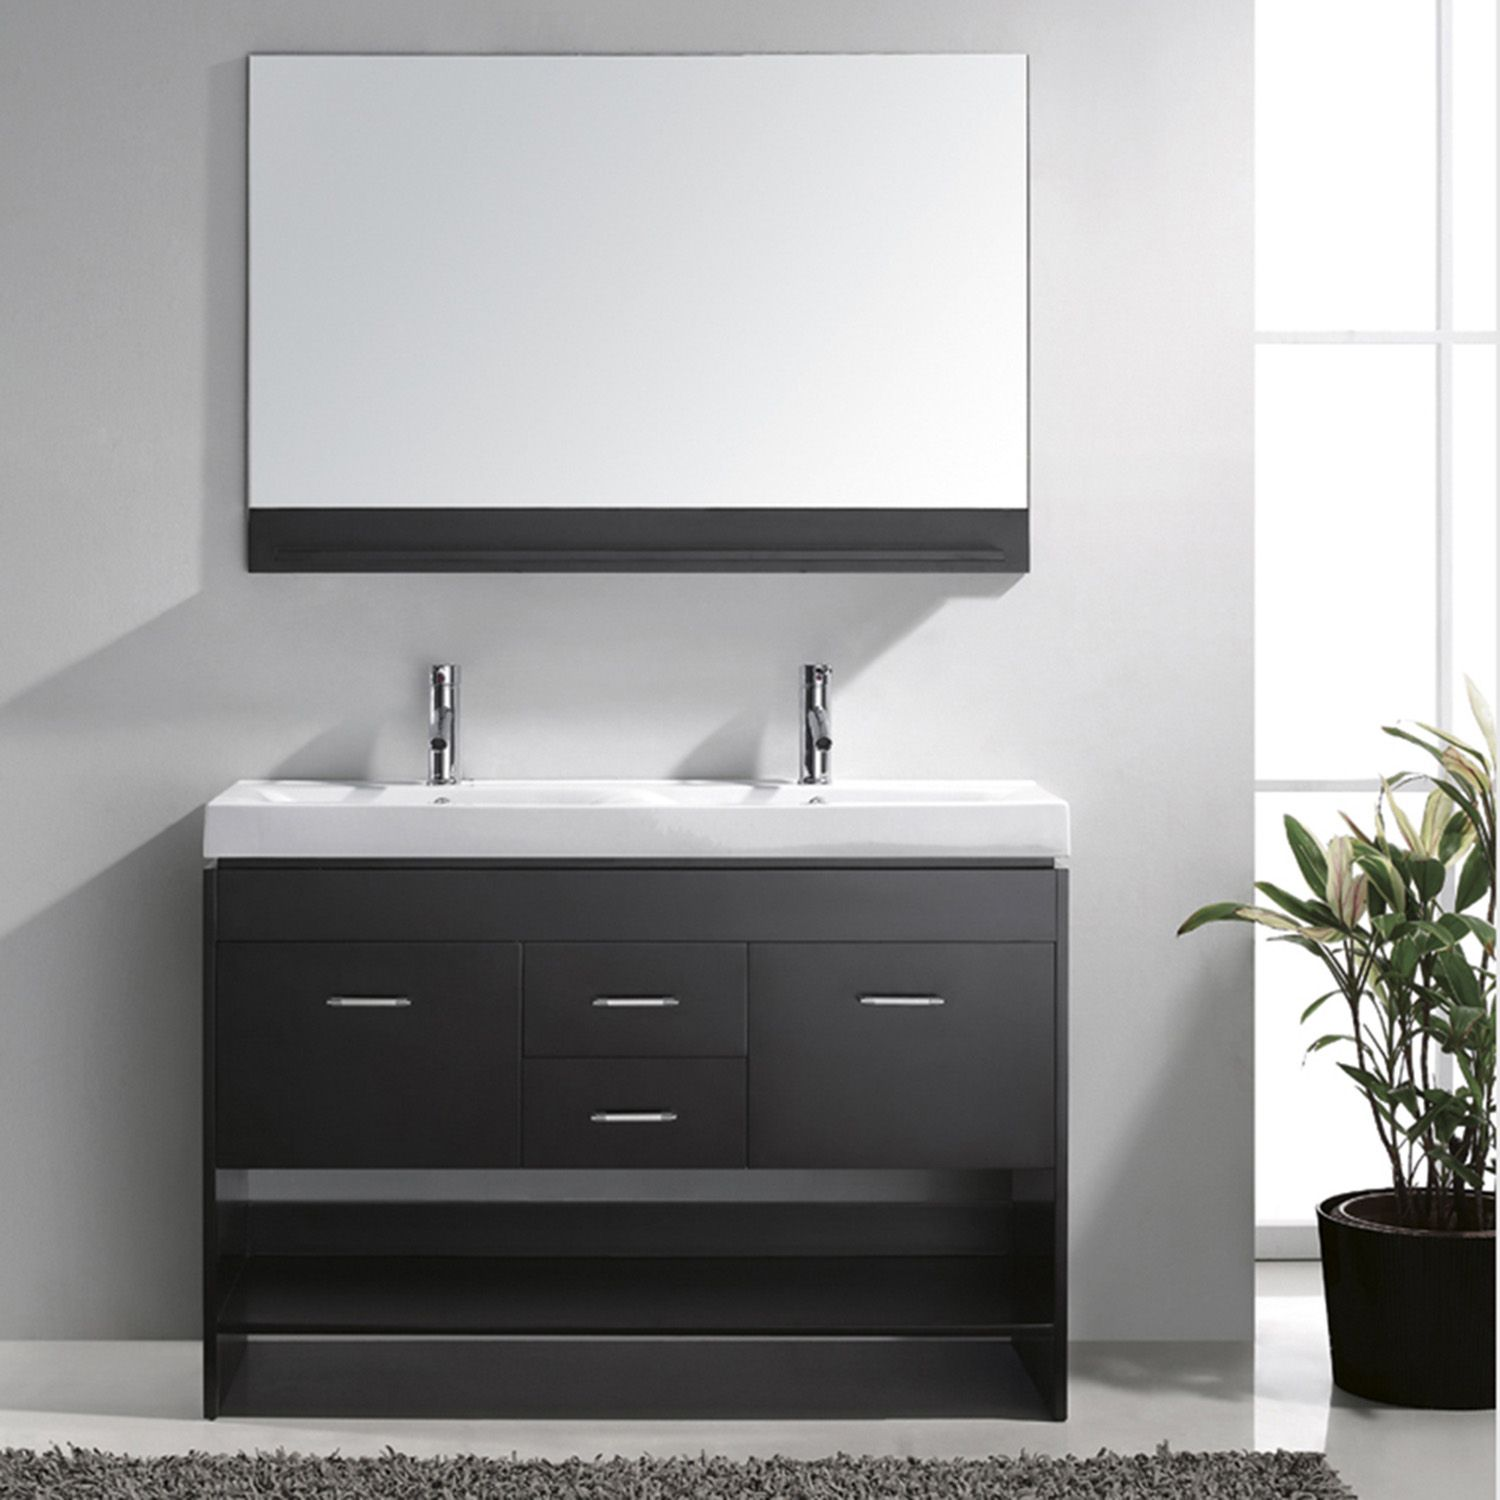 Should You Buy a Cheap Bathroom Vanity or High Quality One? - Luxury ...